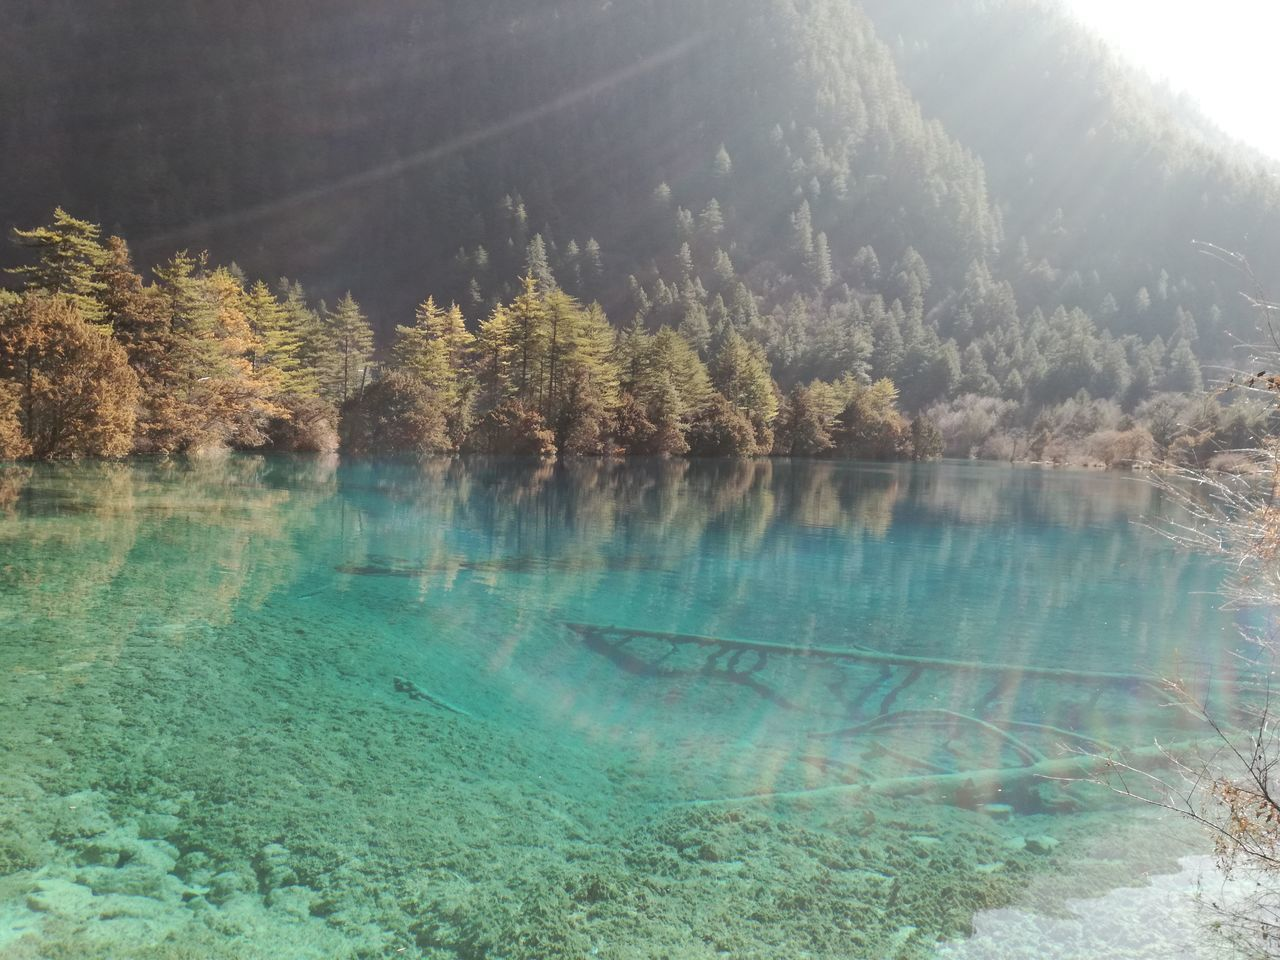 Water Lake Nature Landscape Beauty In Nature Scenics Outdoors Valley River Travel Destinations Vacations China Jiuzhaigou Natural Reserve Sichuan Province EyeEmNewHere